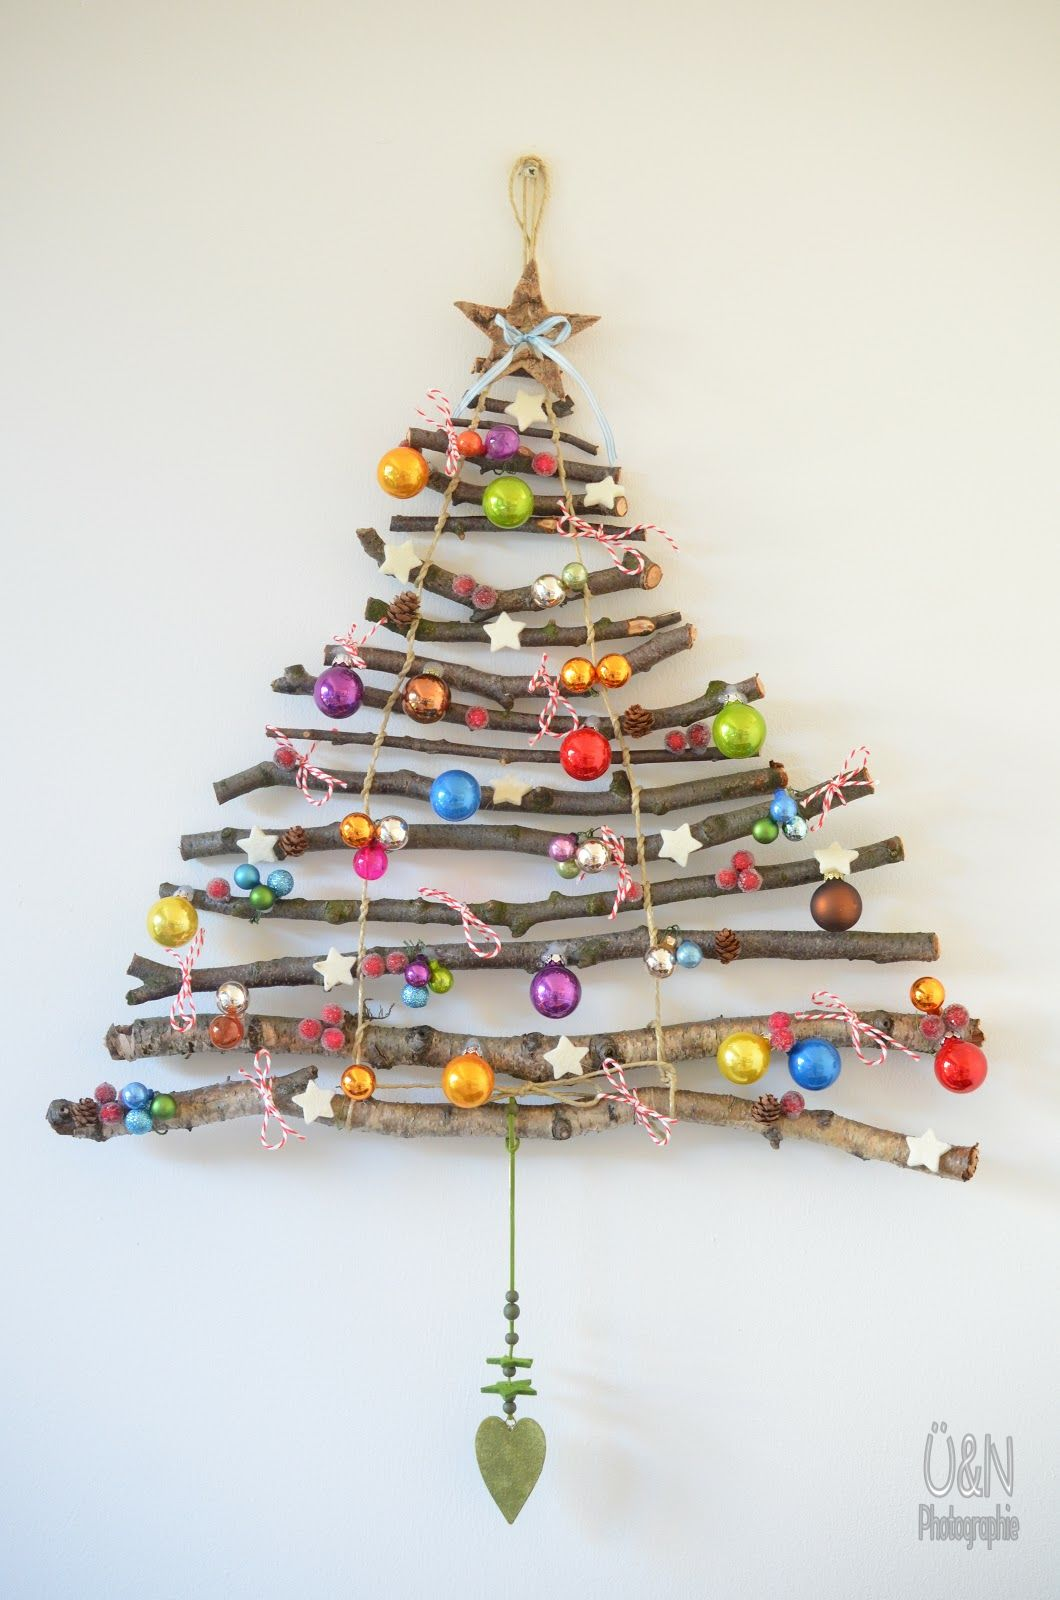 the-best-diy-christmas-decorations-and-homemade-holiday-crafts-31